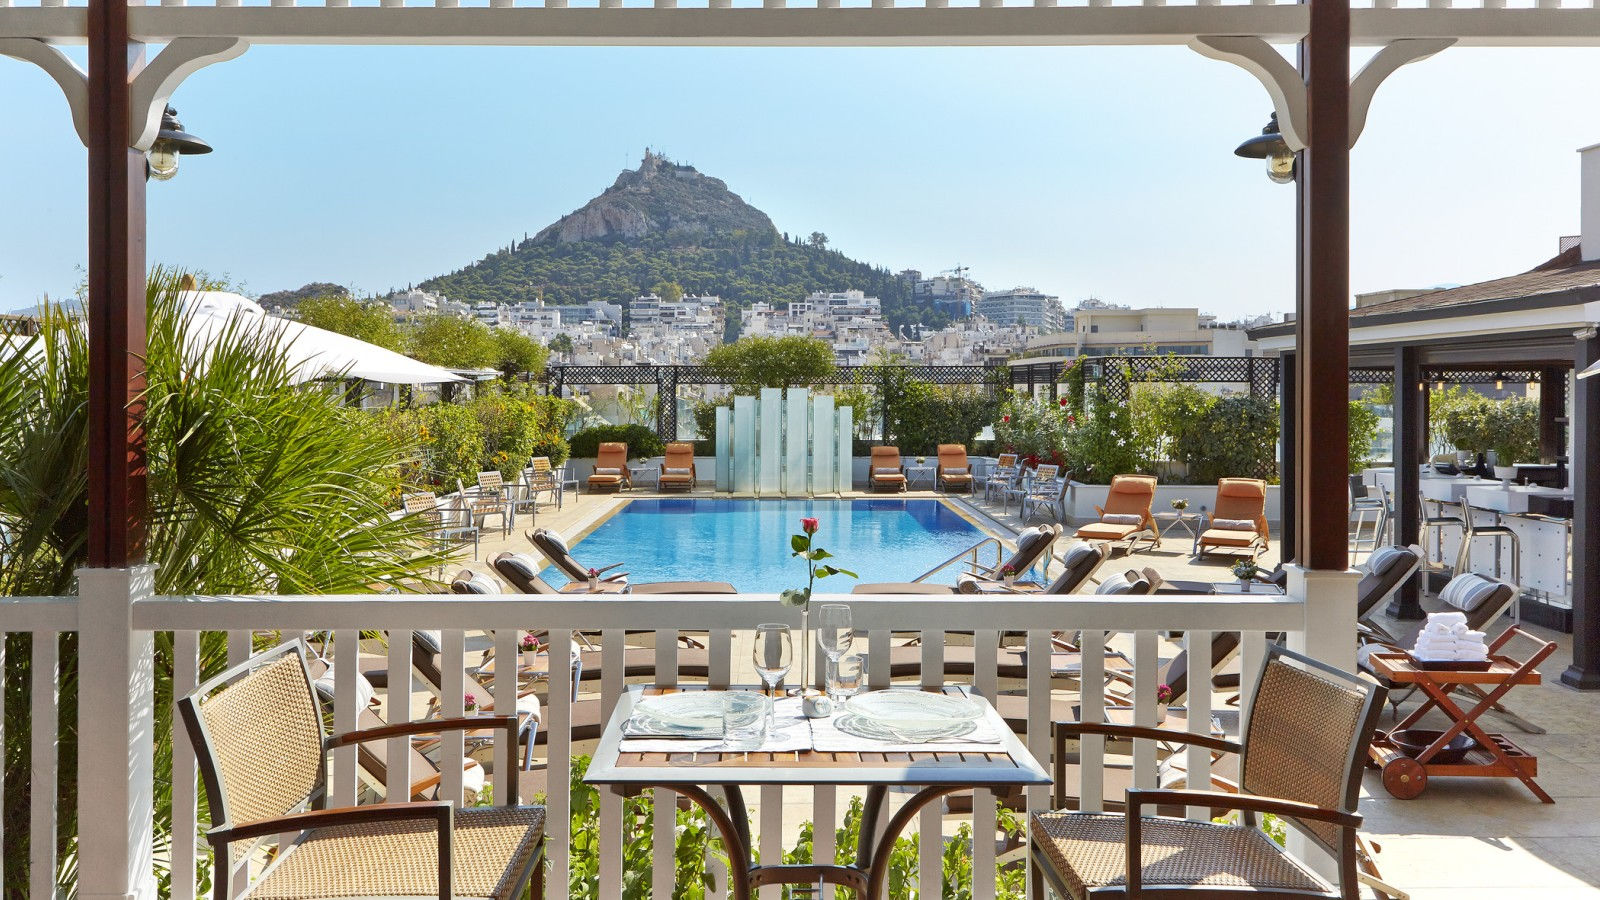 The roof-top outdoor swimming pool provides a cool respite from Athens' summer sun - Hotel Grande Bretagne, Athens